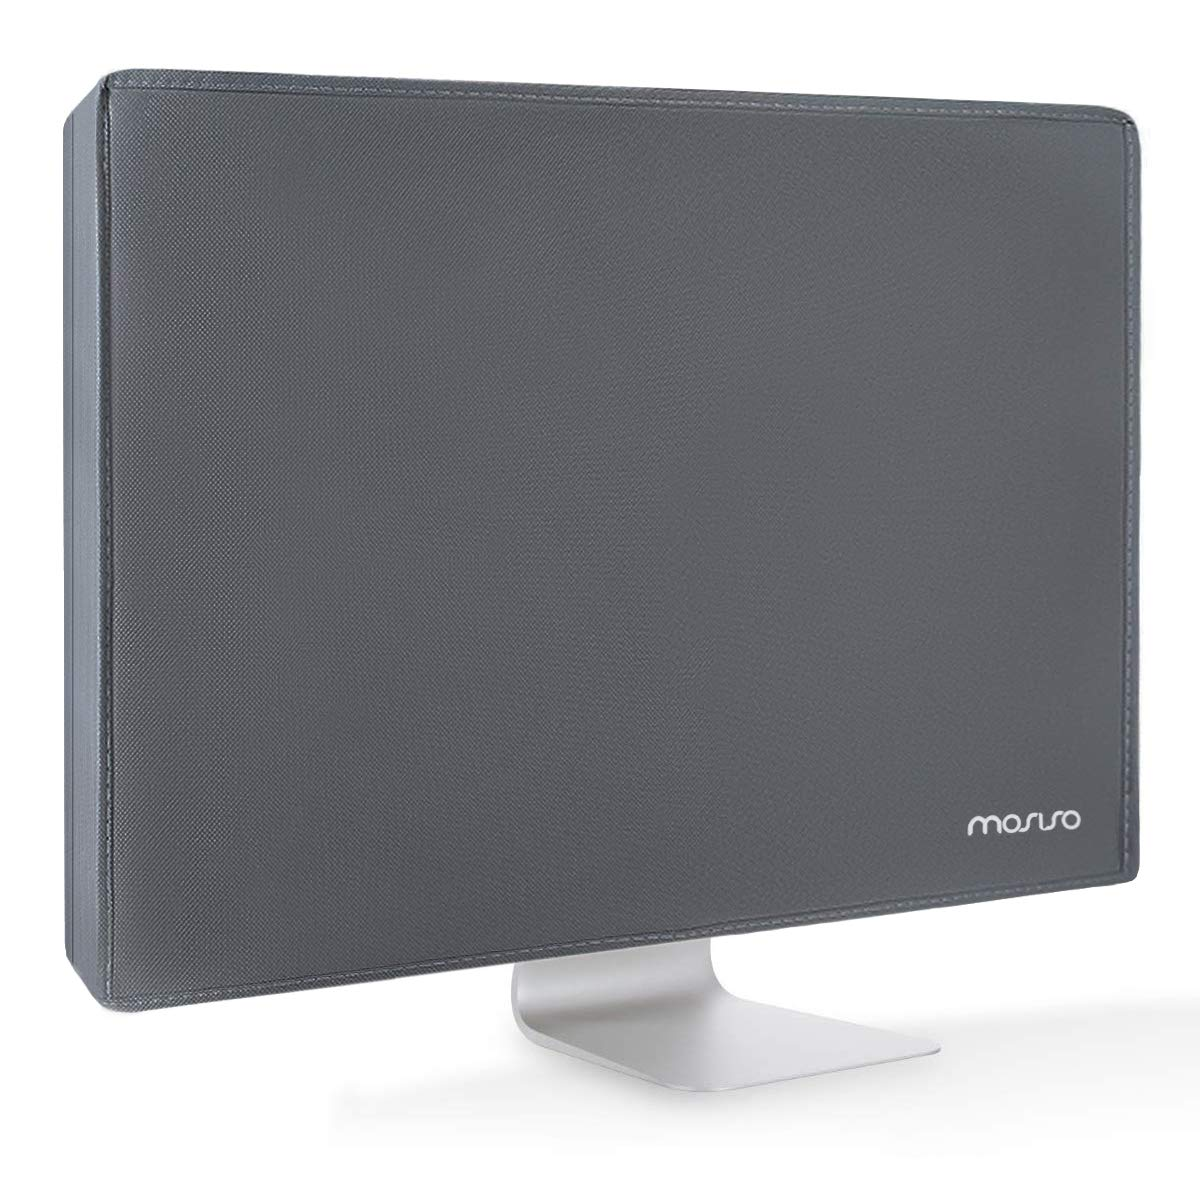 MOSISO Monitor Dust Cover 26, 27, 28, 29 Inch Anti-Static Polyester LCD/LED/HD Panel Case Screen Display Protective Sleeve Compatible with 26-29 Inch iMac, PC, Desktop Computer and TV, Space Gray by MOSISO